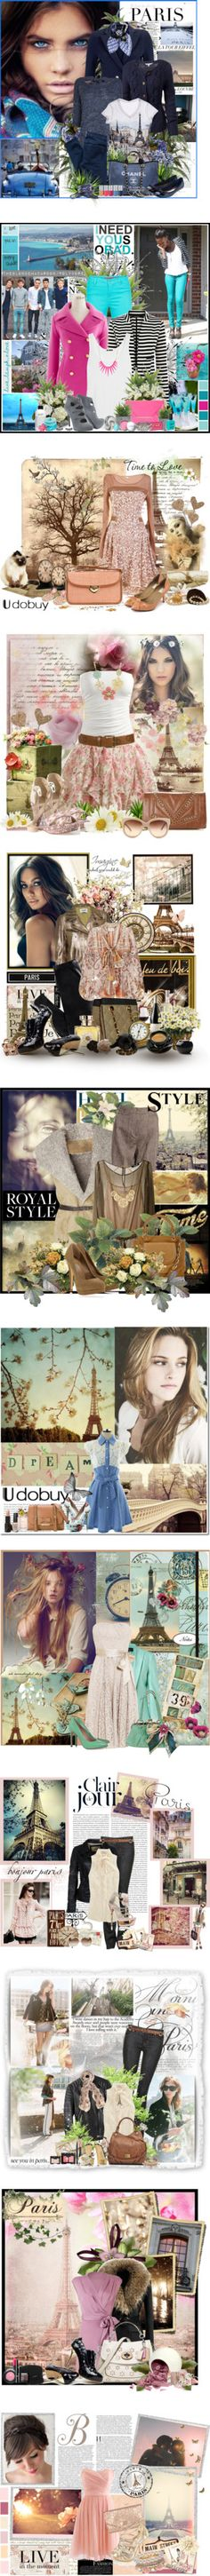 """Un Voyage Vers Paris!"" by kyra-i ❤ liked on Polyvore"